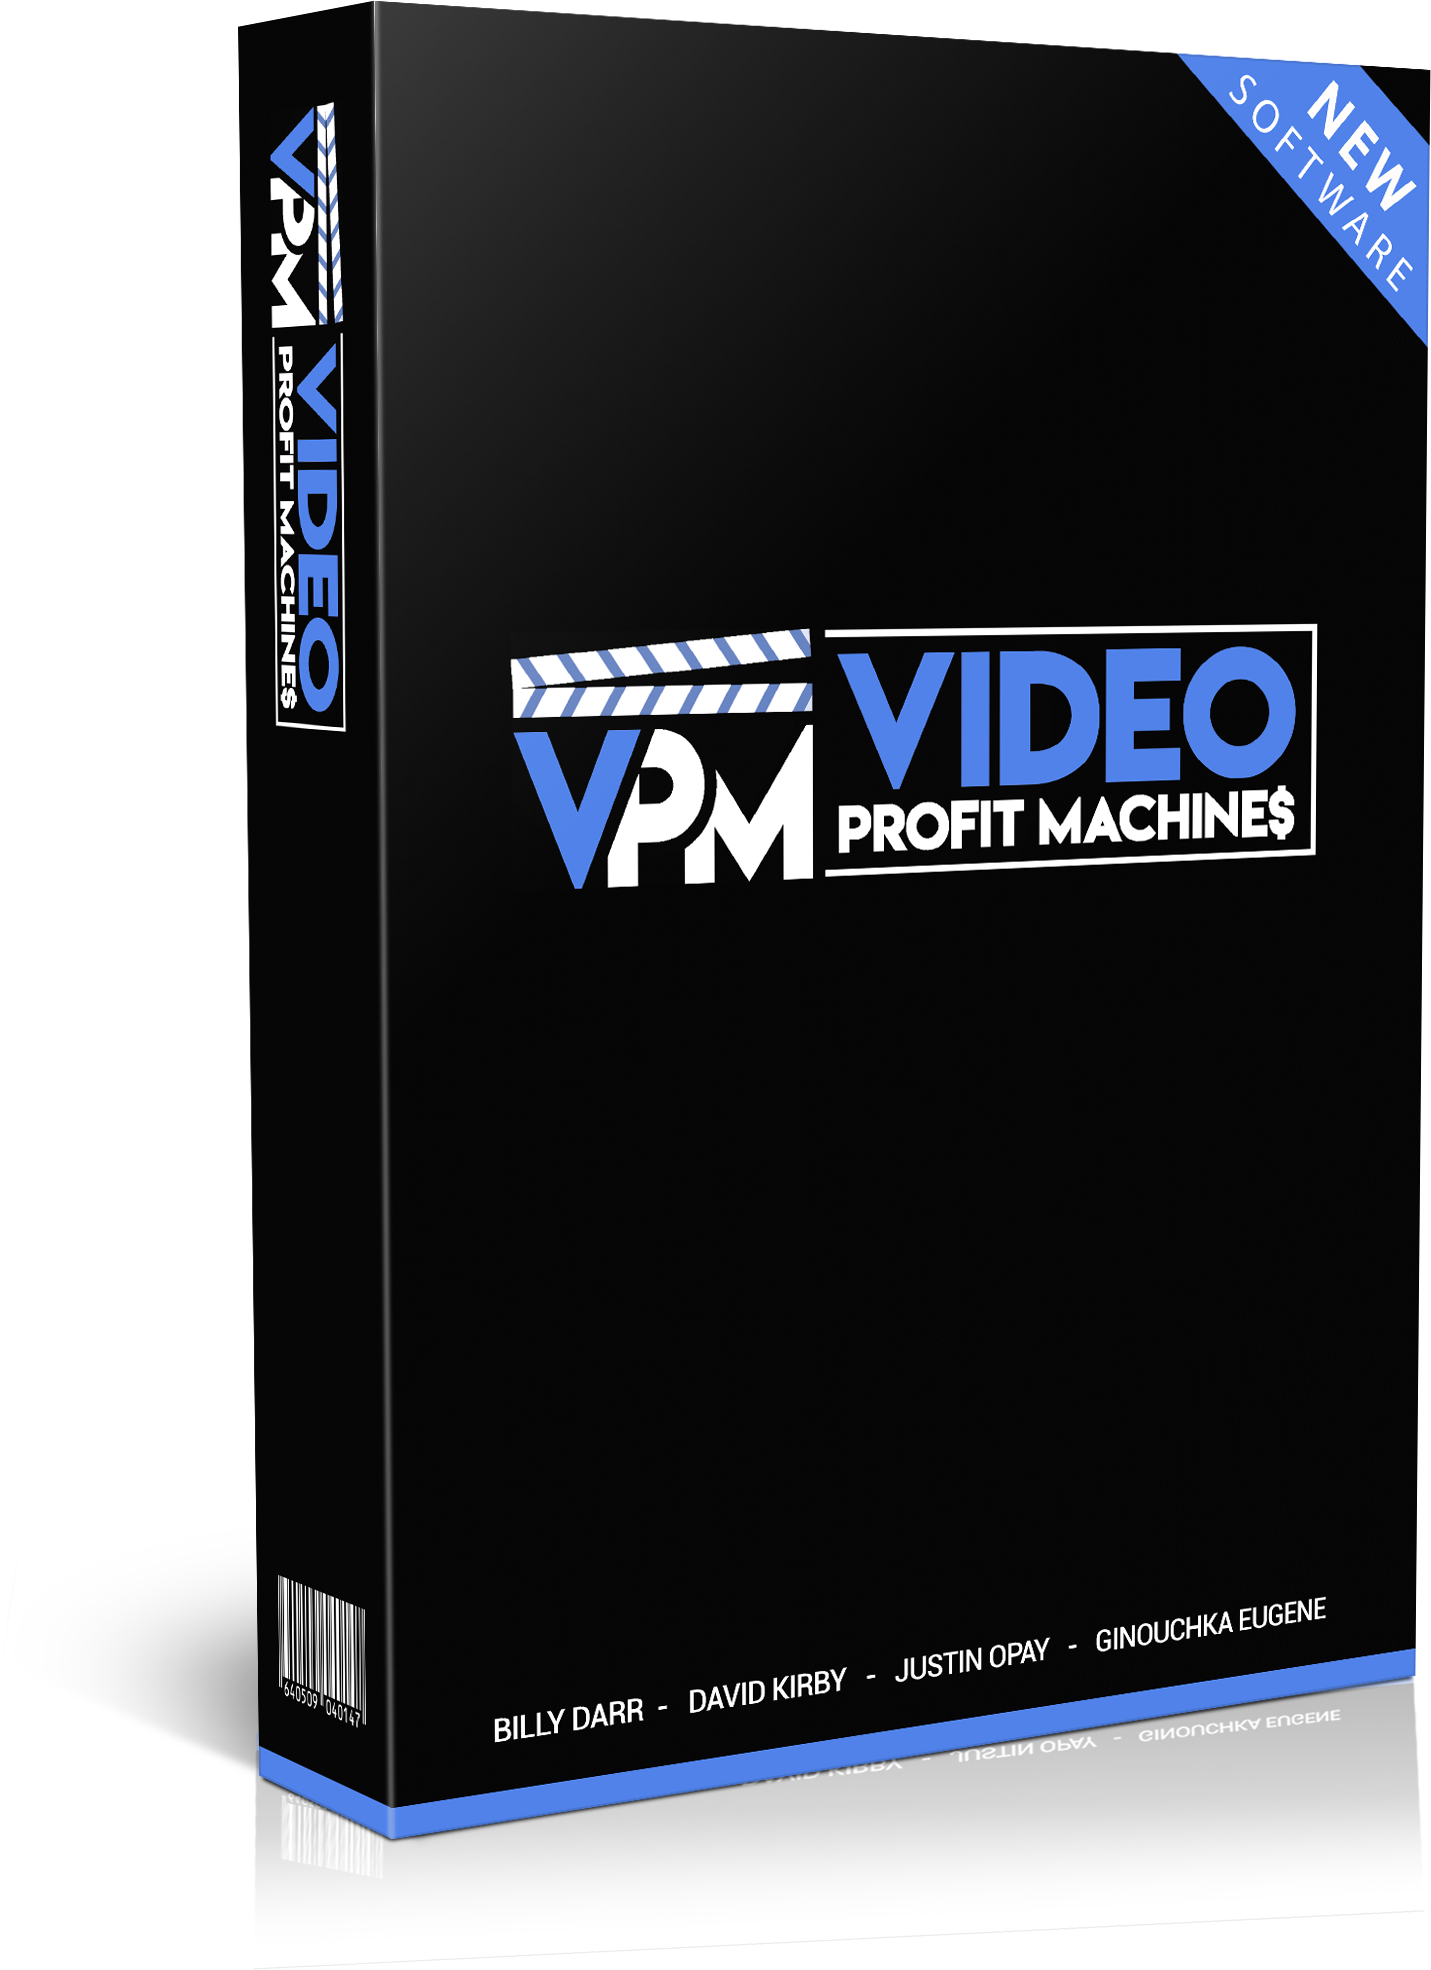 video profit machines review